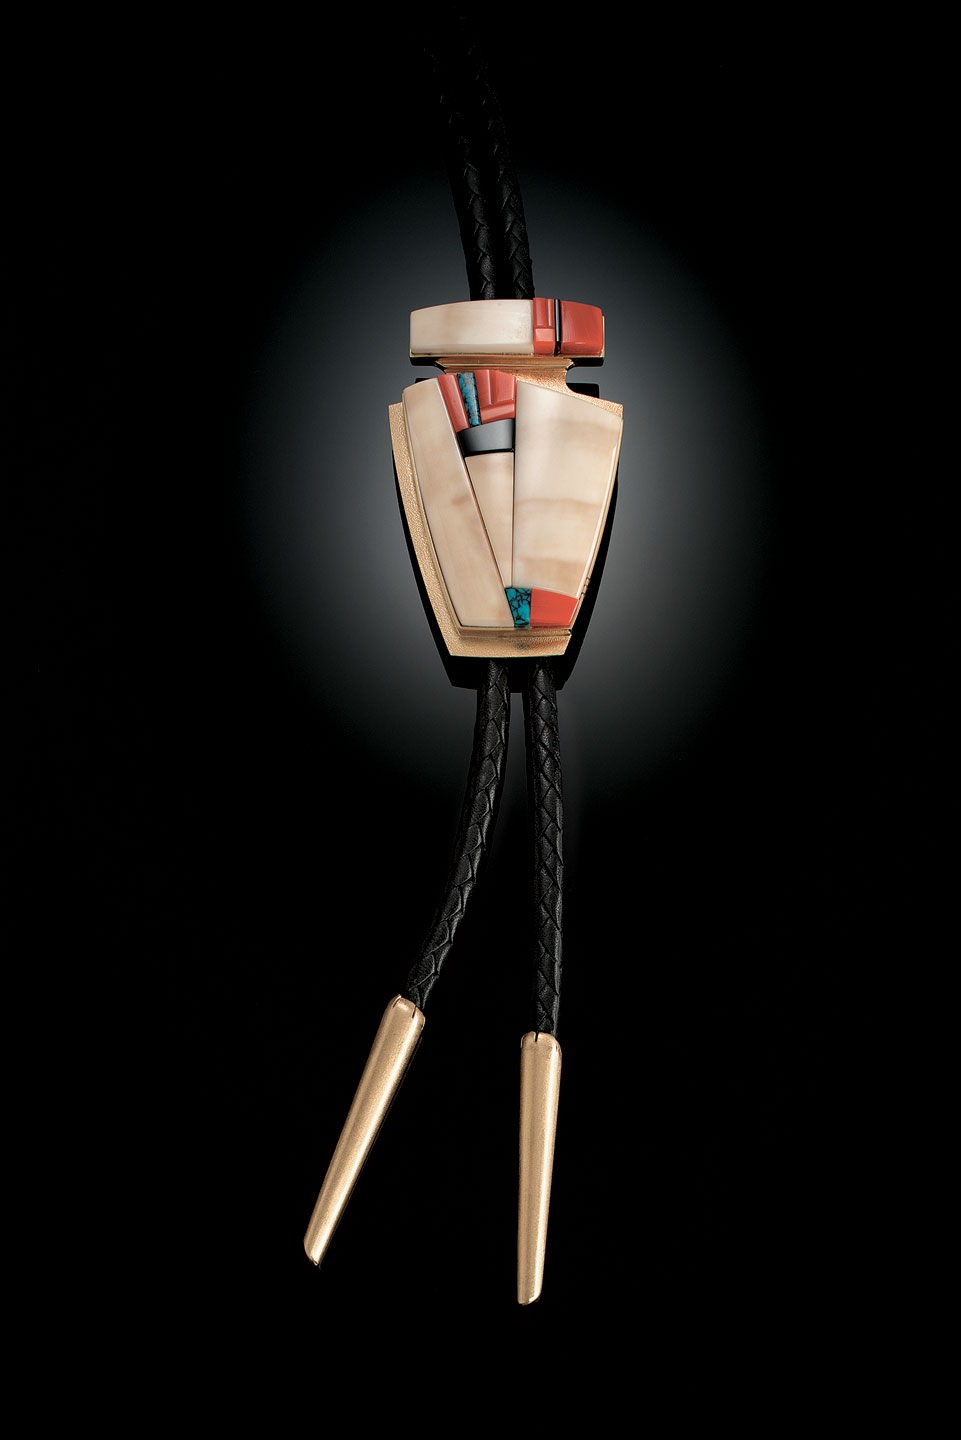 BOLO TIE of fossilized ivory, coral, black jade, turquoise, and fourteen karat gold, 8.3 x 5.4 centimeters, 1998.  Private Collection.